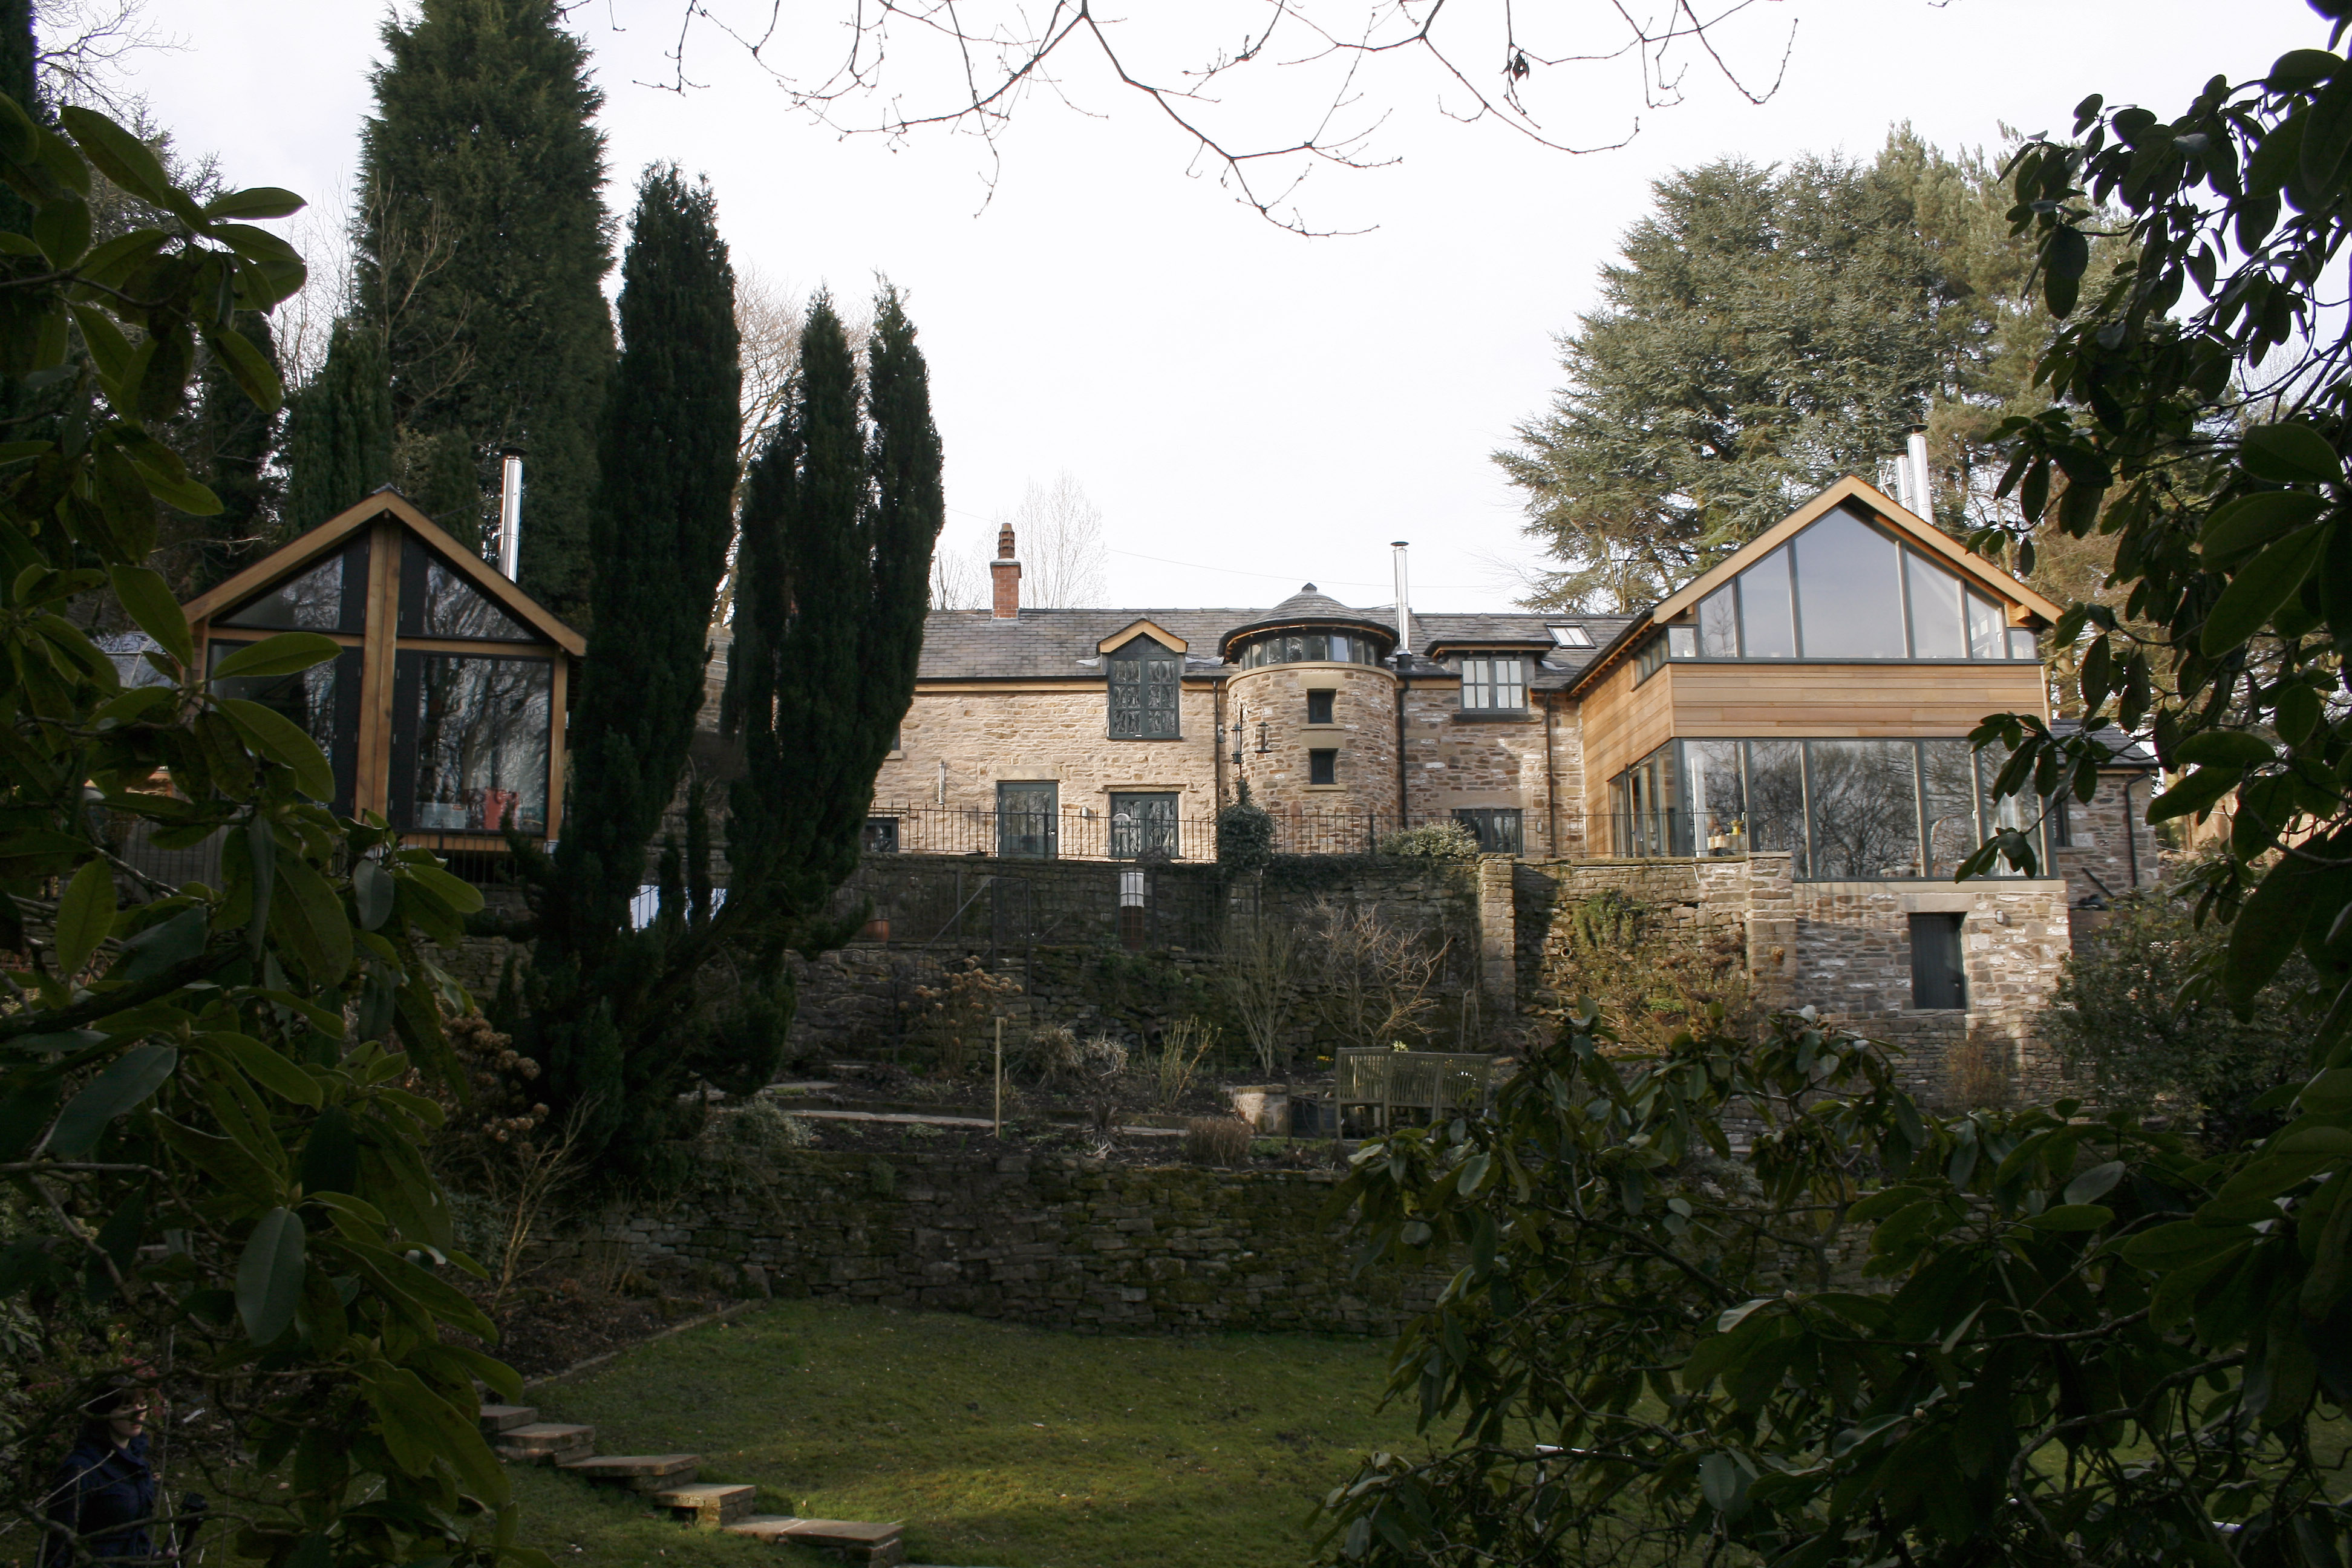 External showing stone house and timber clad extension